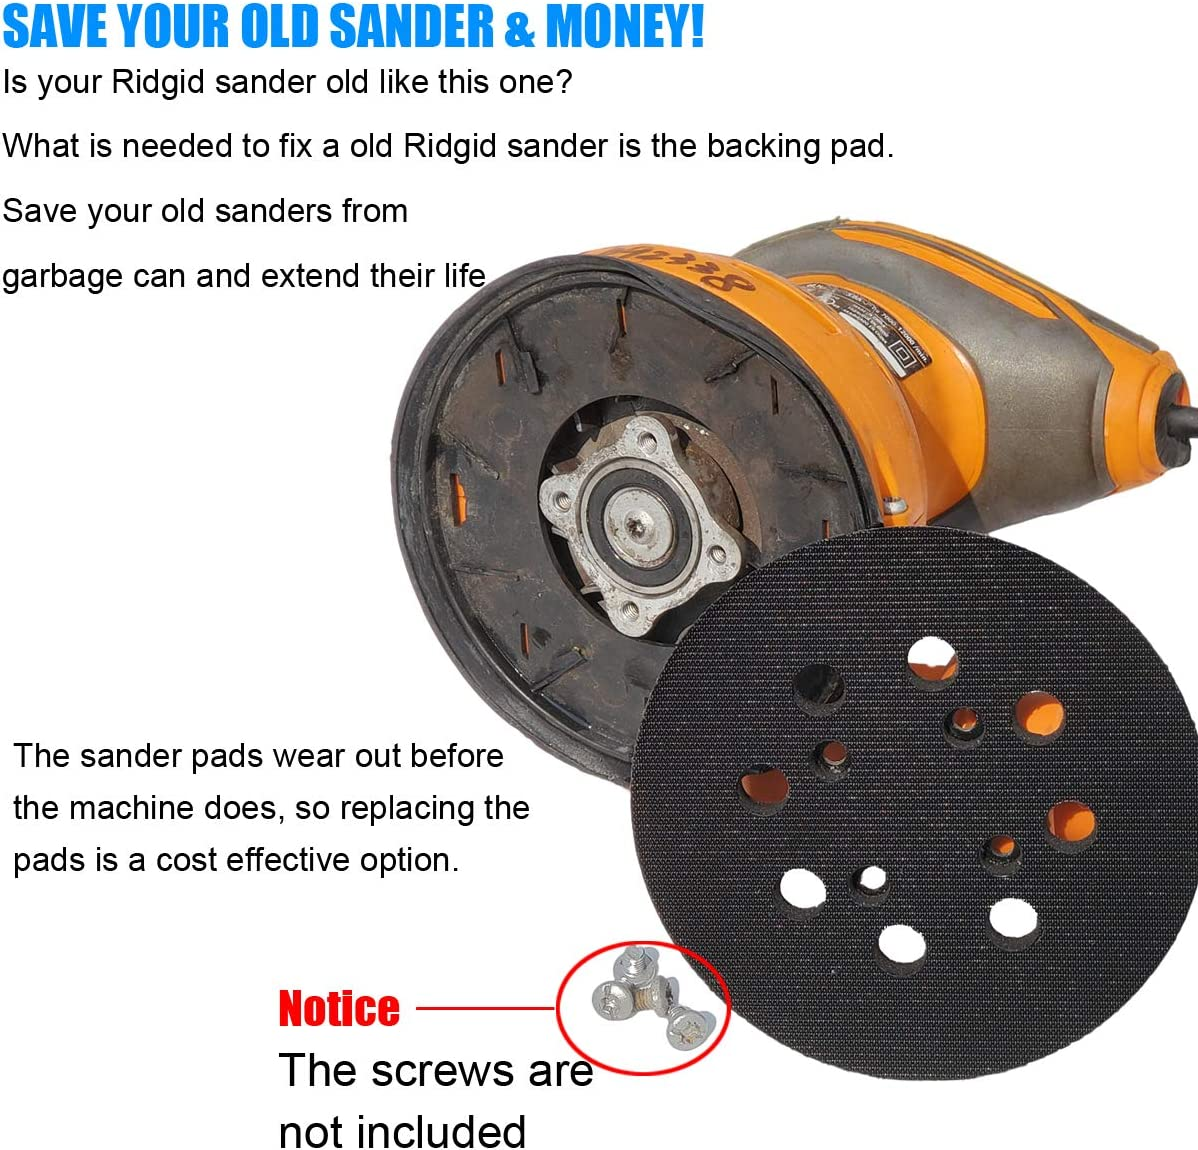 R2601 Random Orbit Sanders 5 Hook and Loop Sander Pad for Ridgid R2600 with Extra Hard Backing Replacement for Pad Part Number 300527002